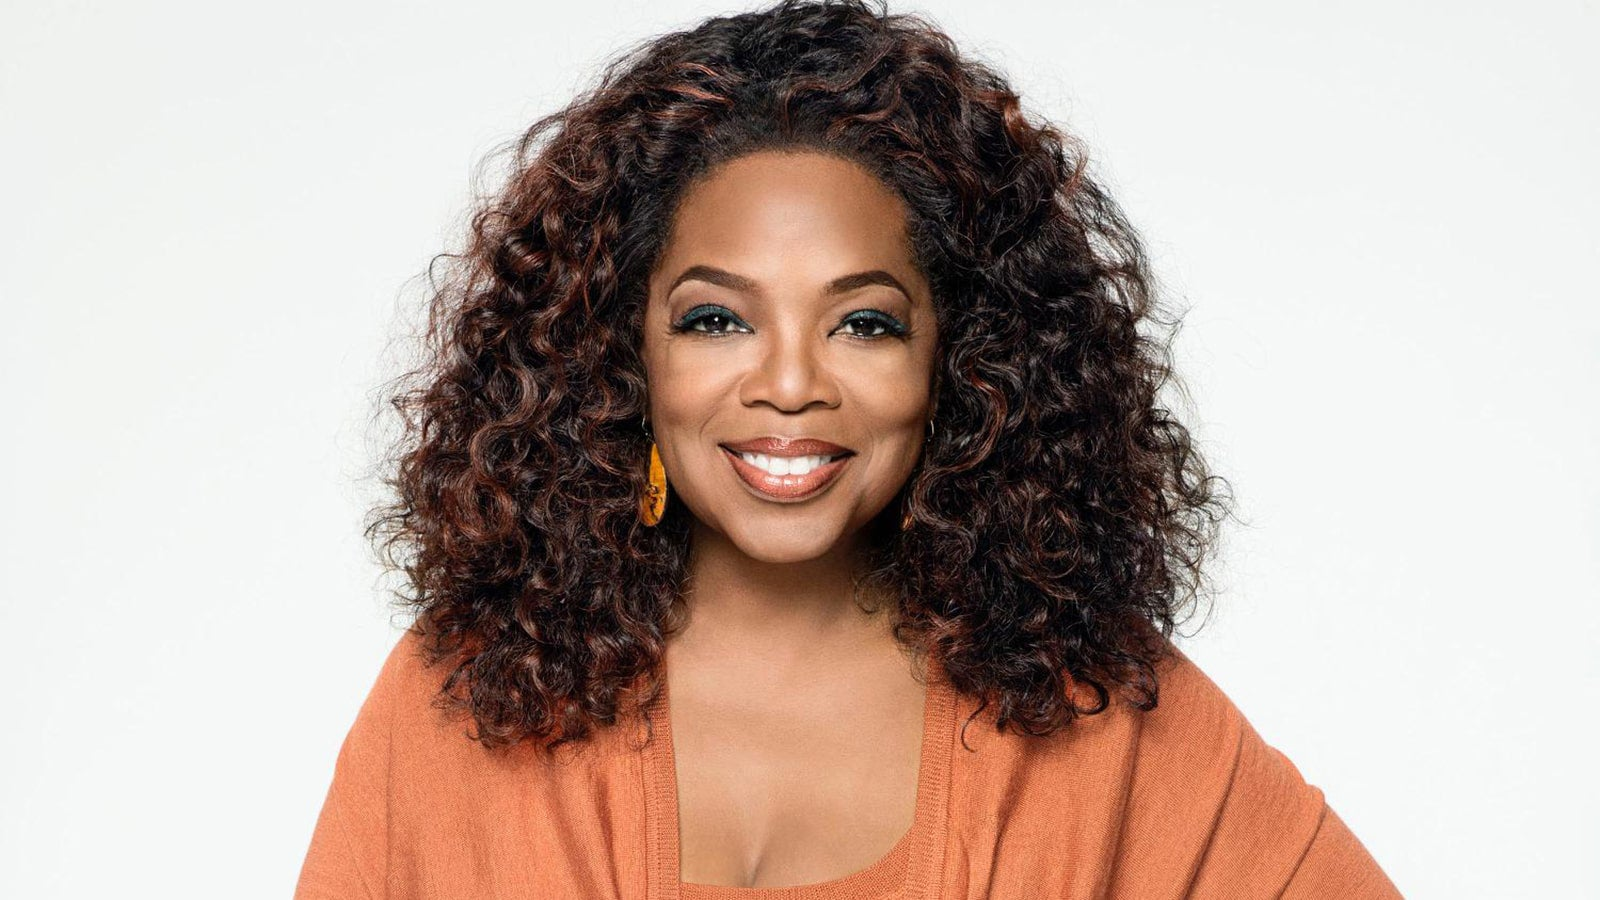 A photograph of Oprah Winfrey in an orange top against a white background.